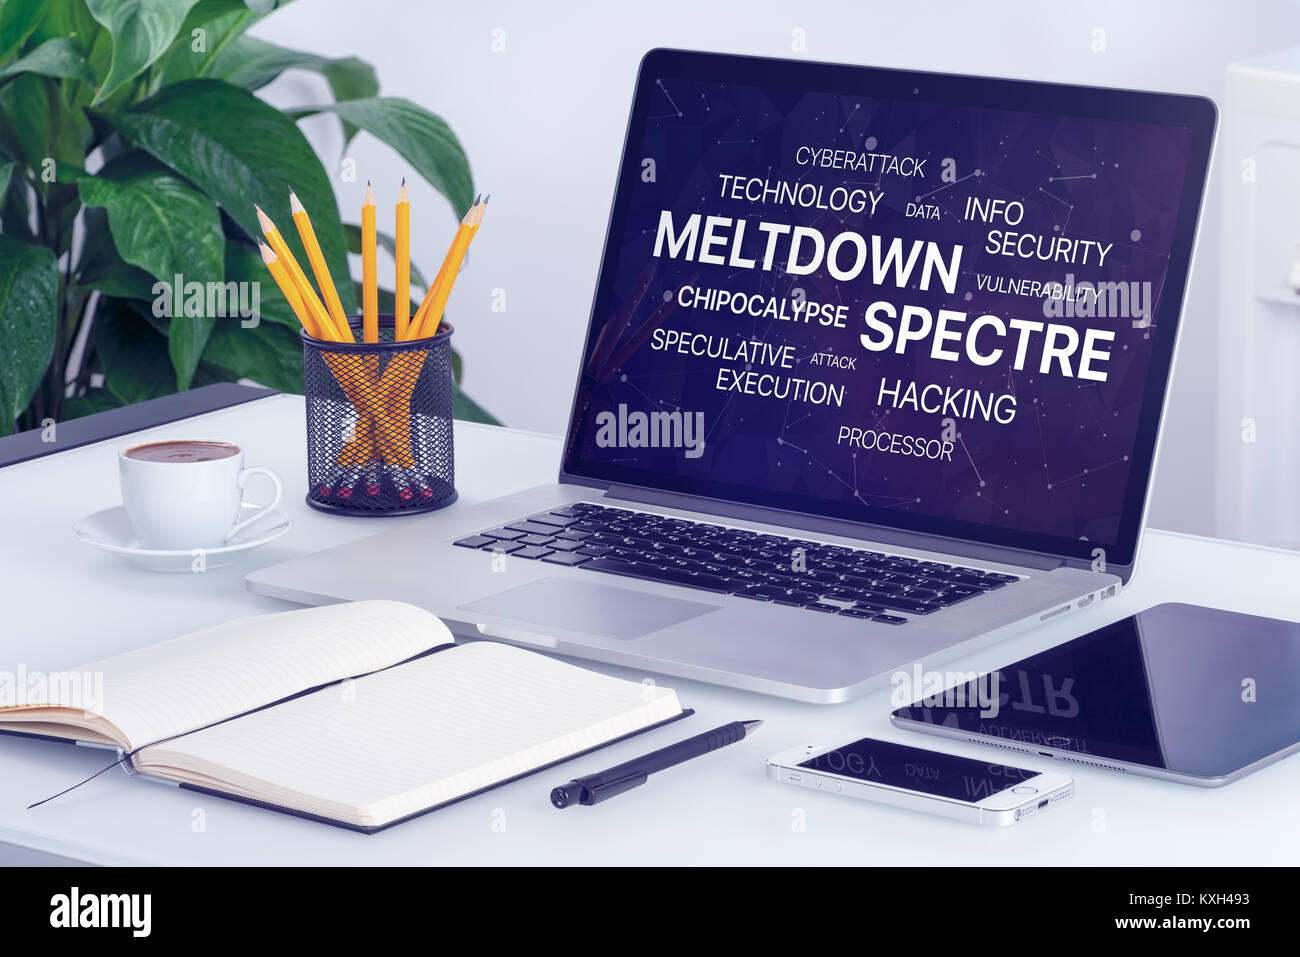 Meltdown and spectre threat concept on laptop screen. - Stock Image